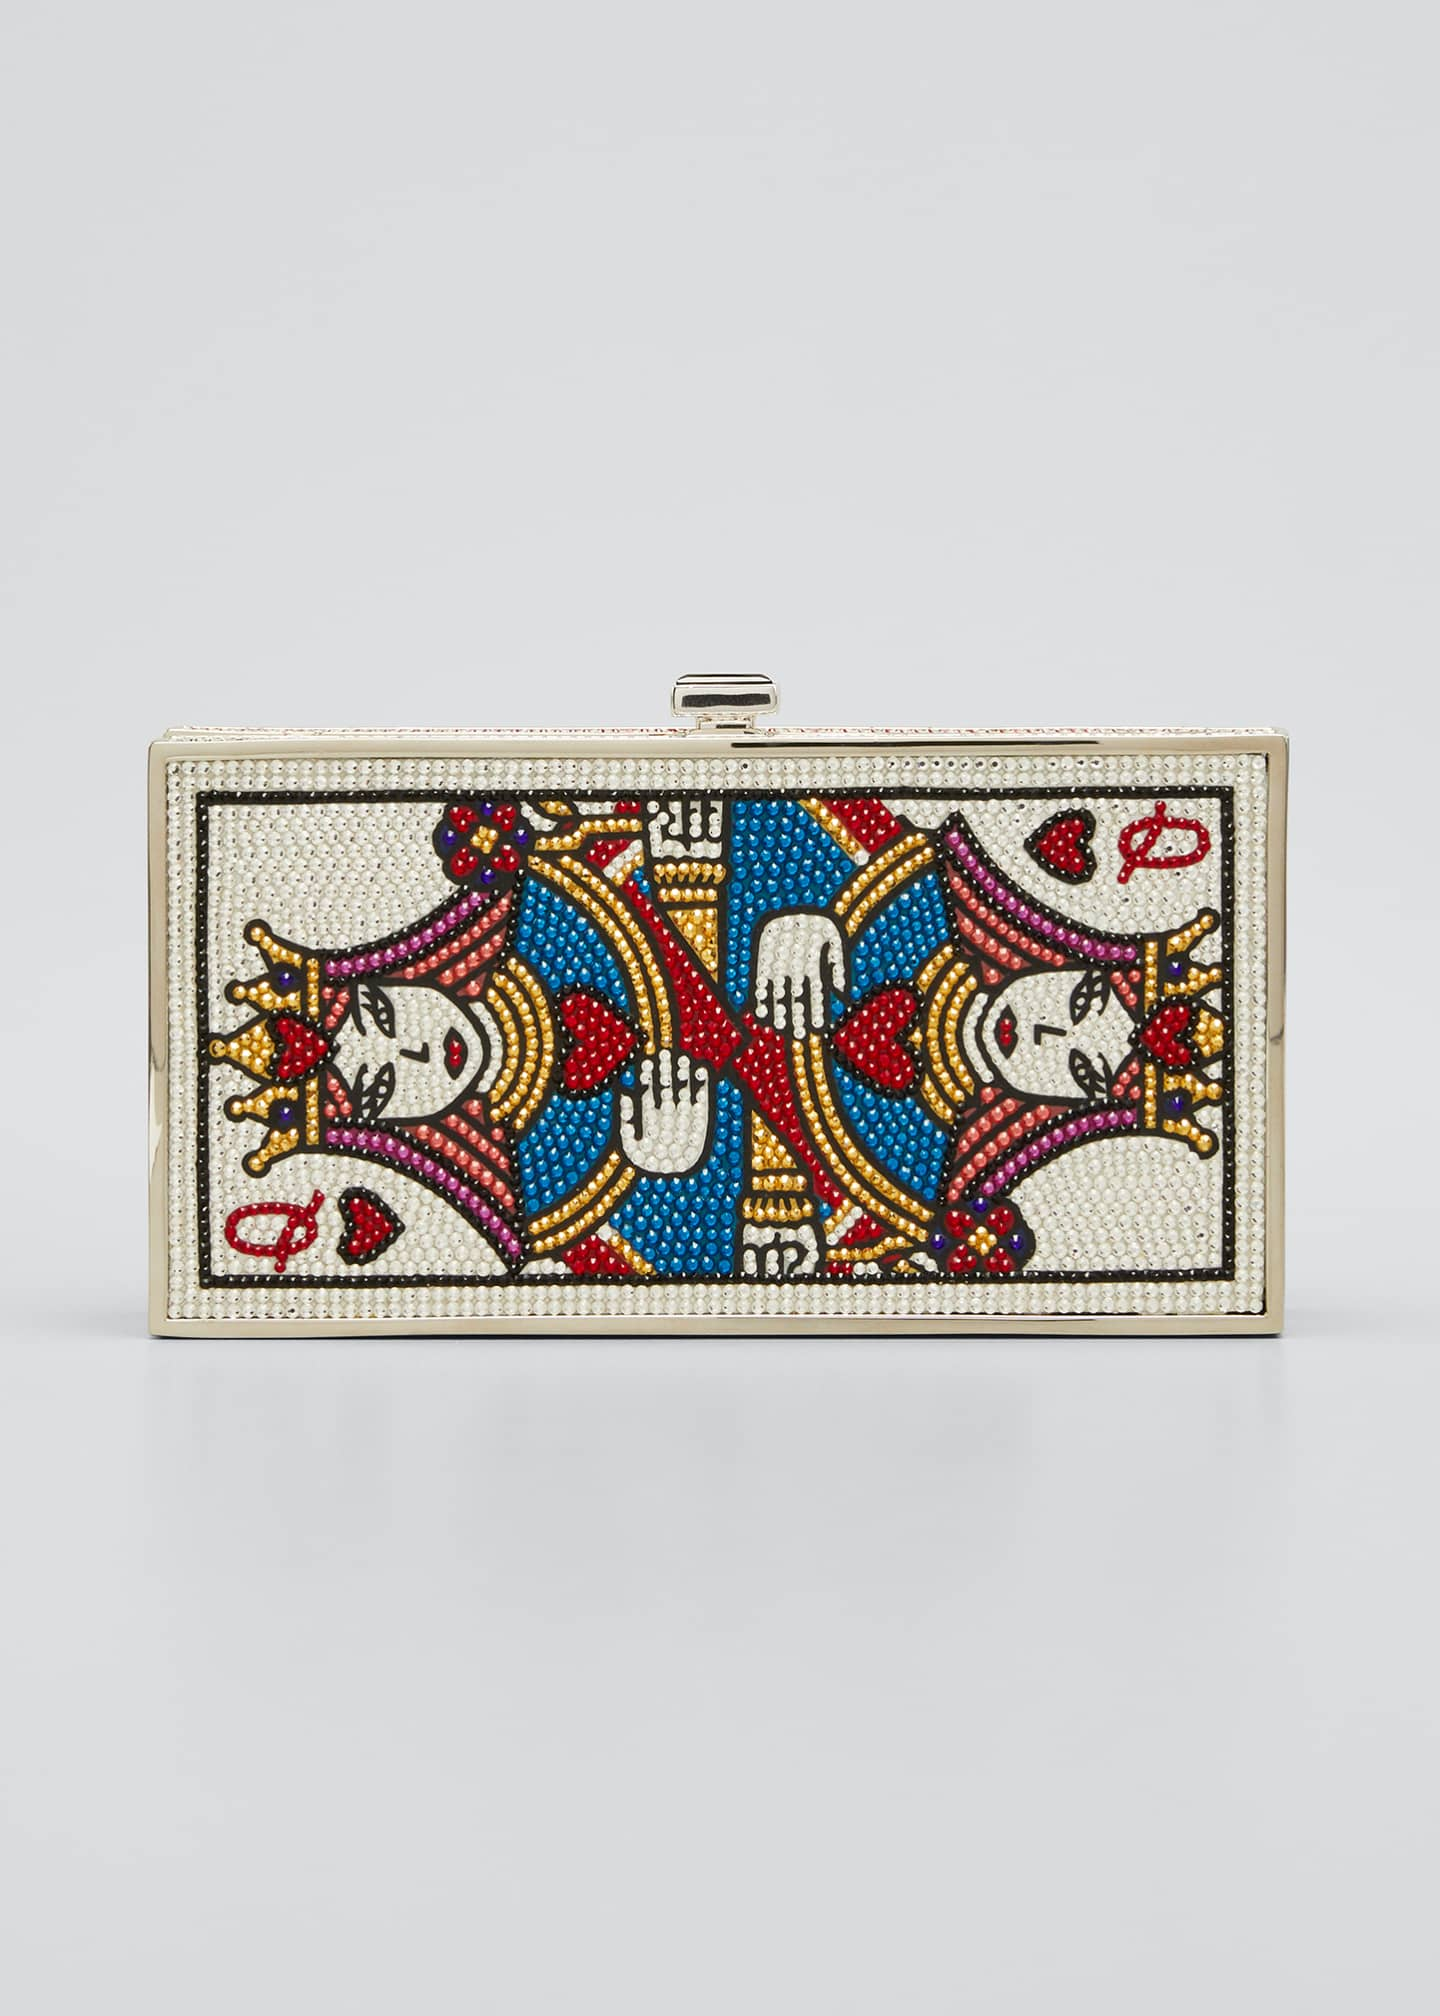 JUDITH LEIBER COUTURE Queen Of Hearts Box Clutch Bag